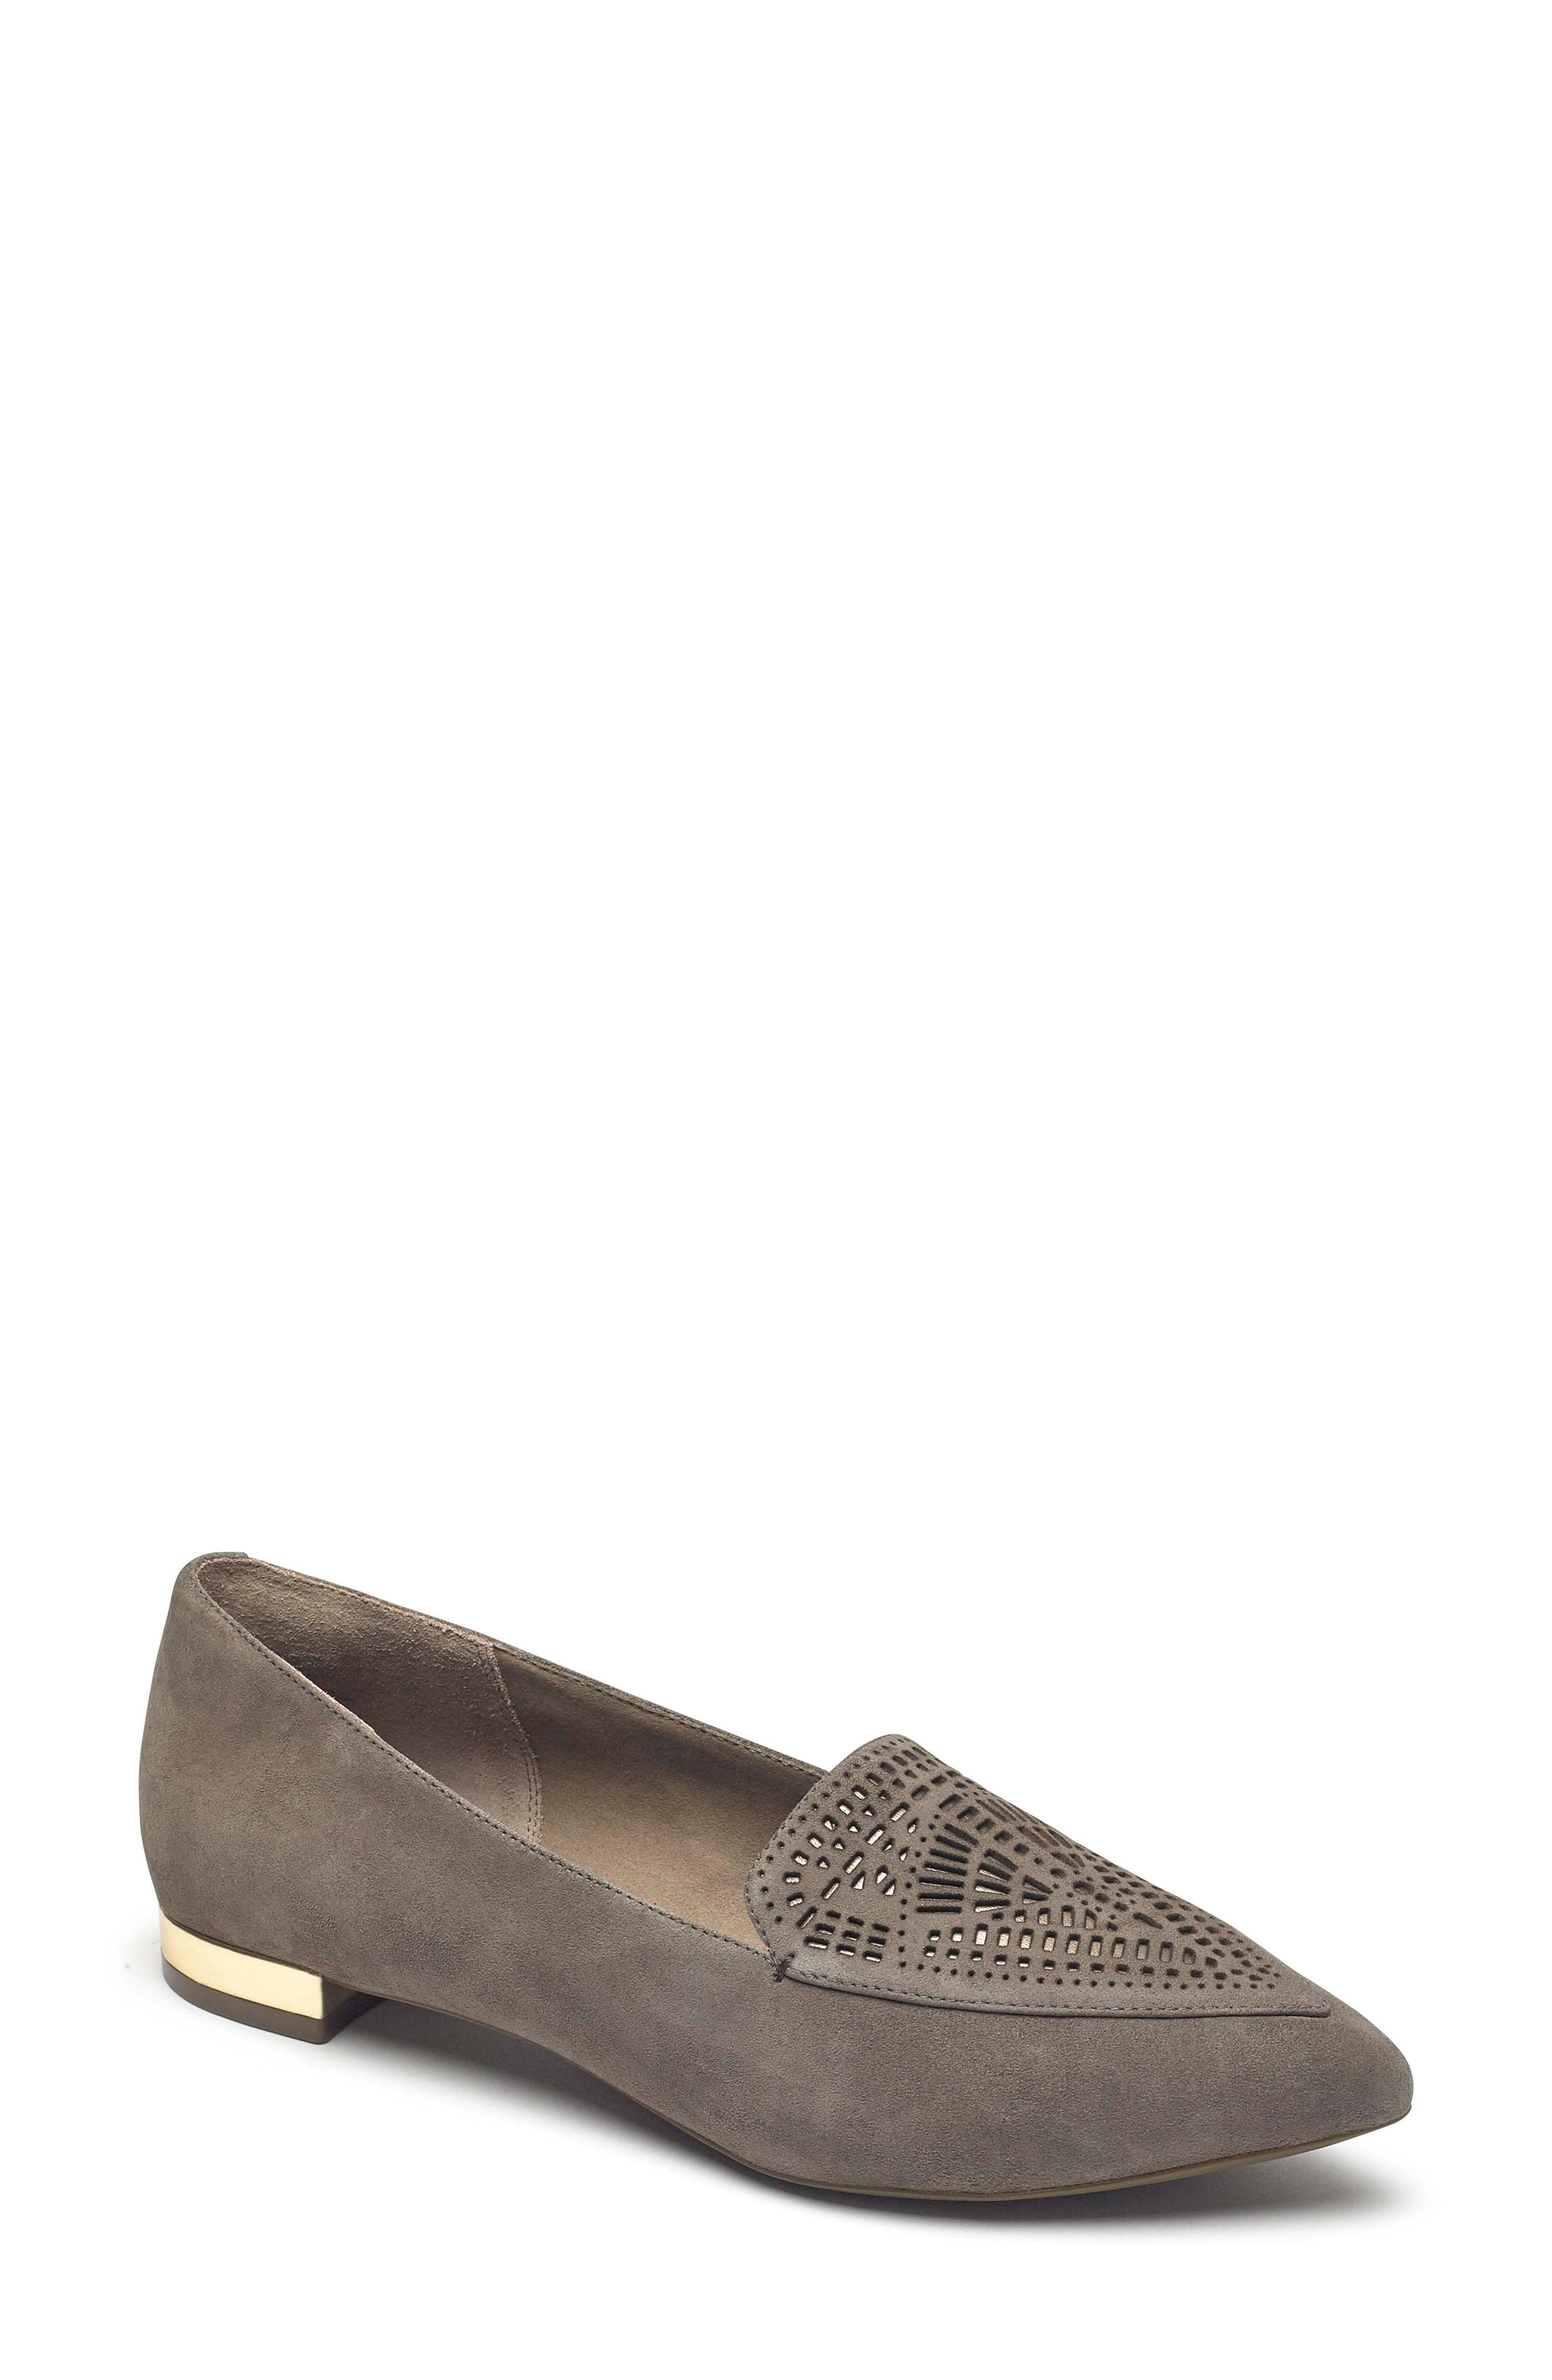 Total Motion Adelyn Loafer,                         Main,                         color, WARM IRON